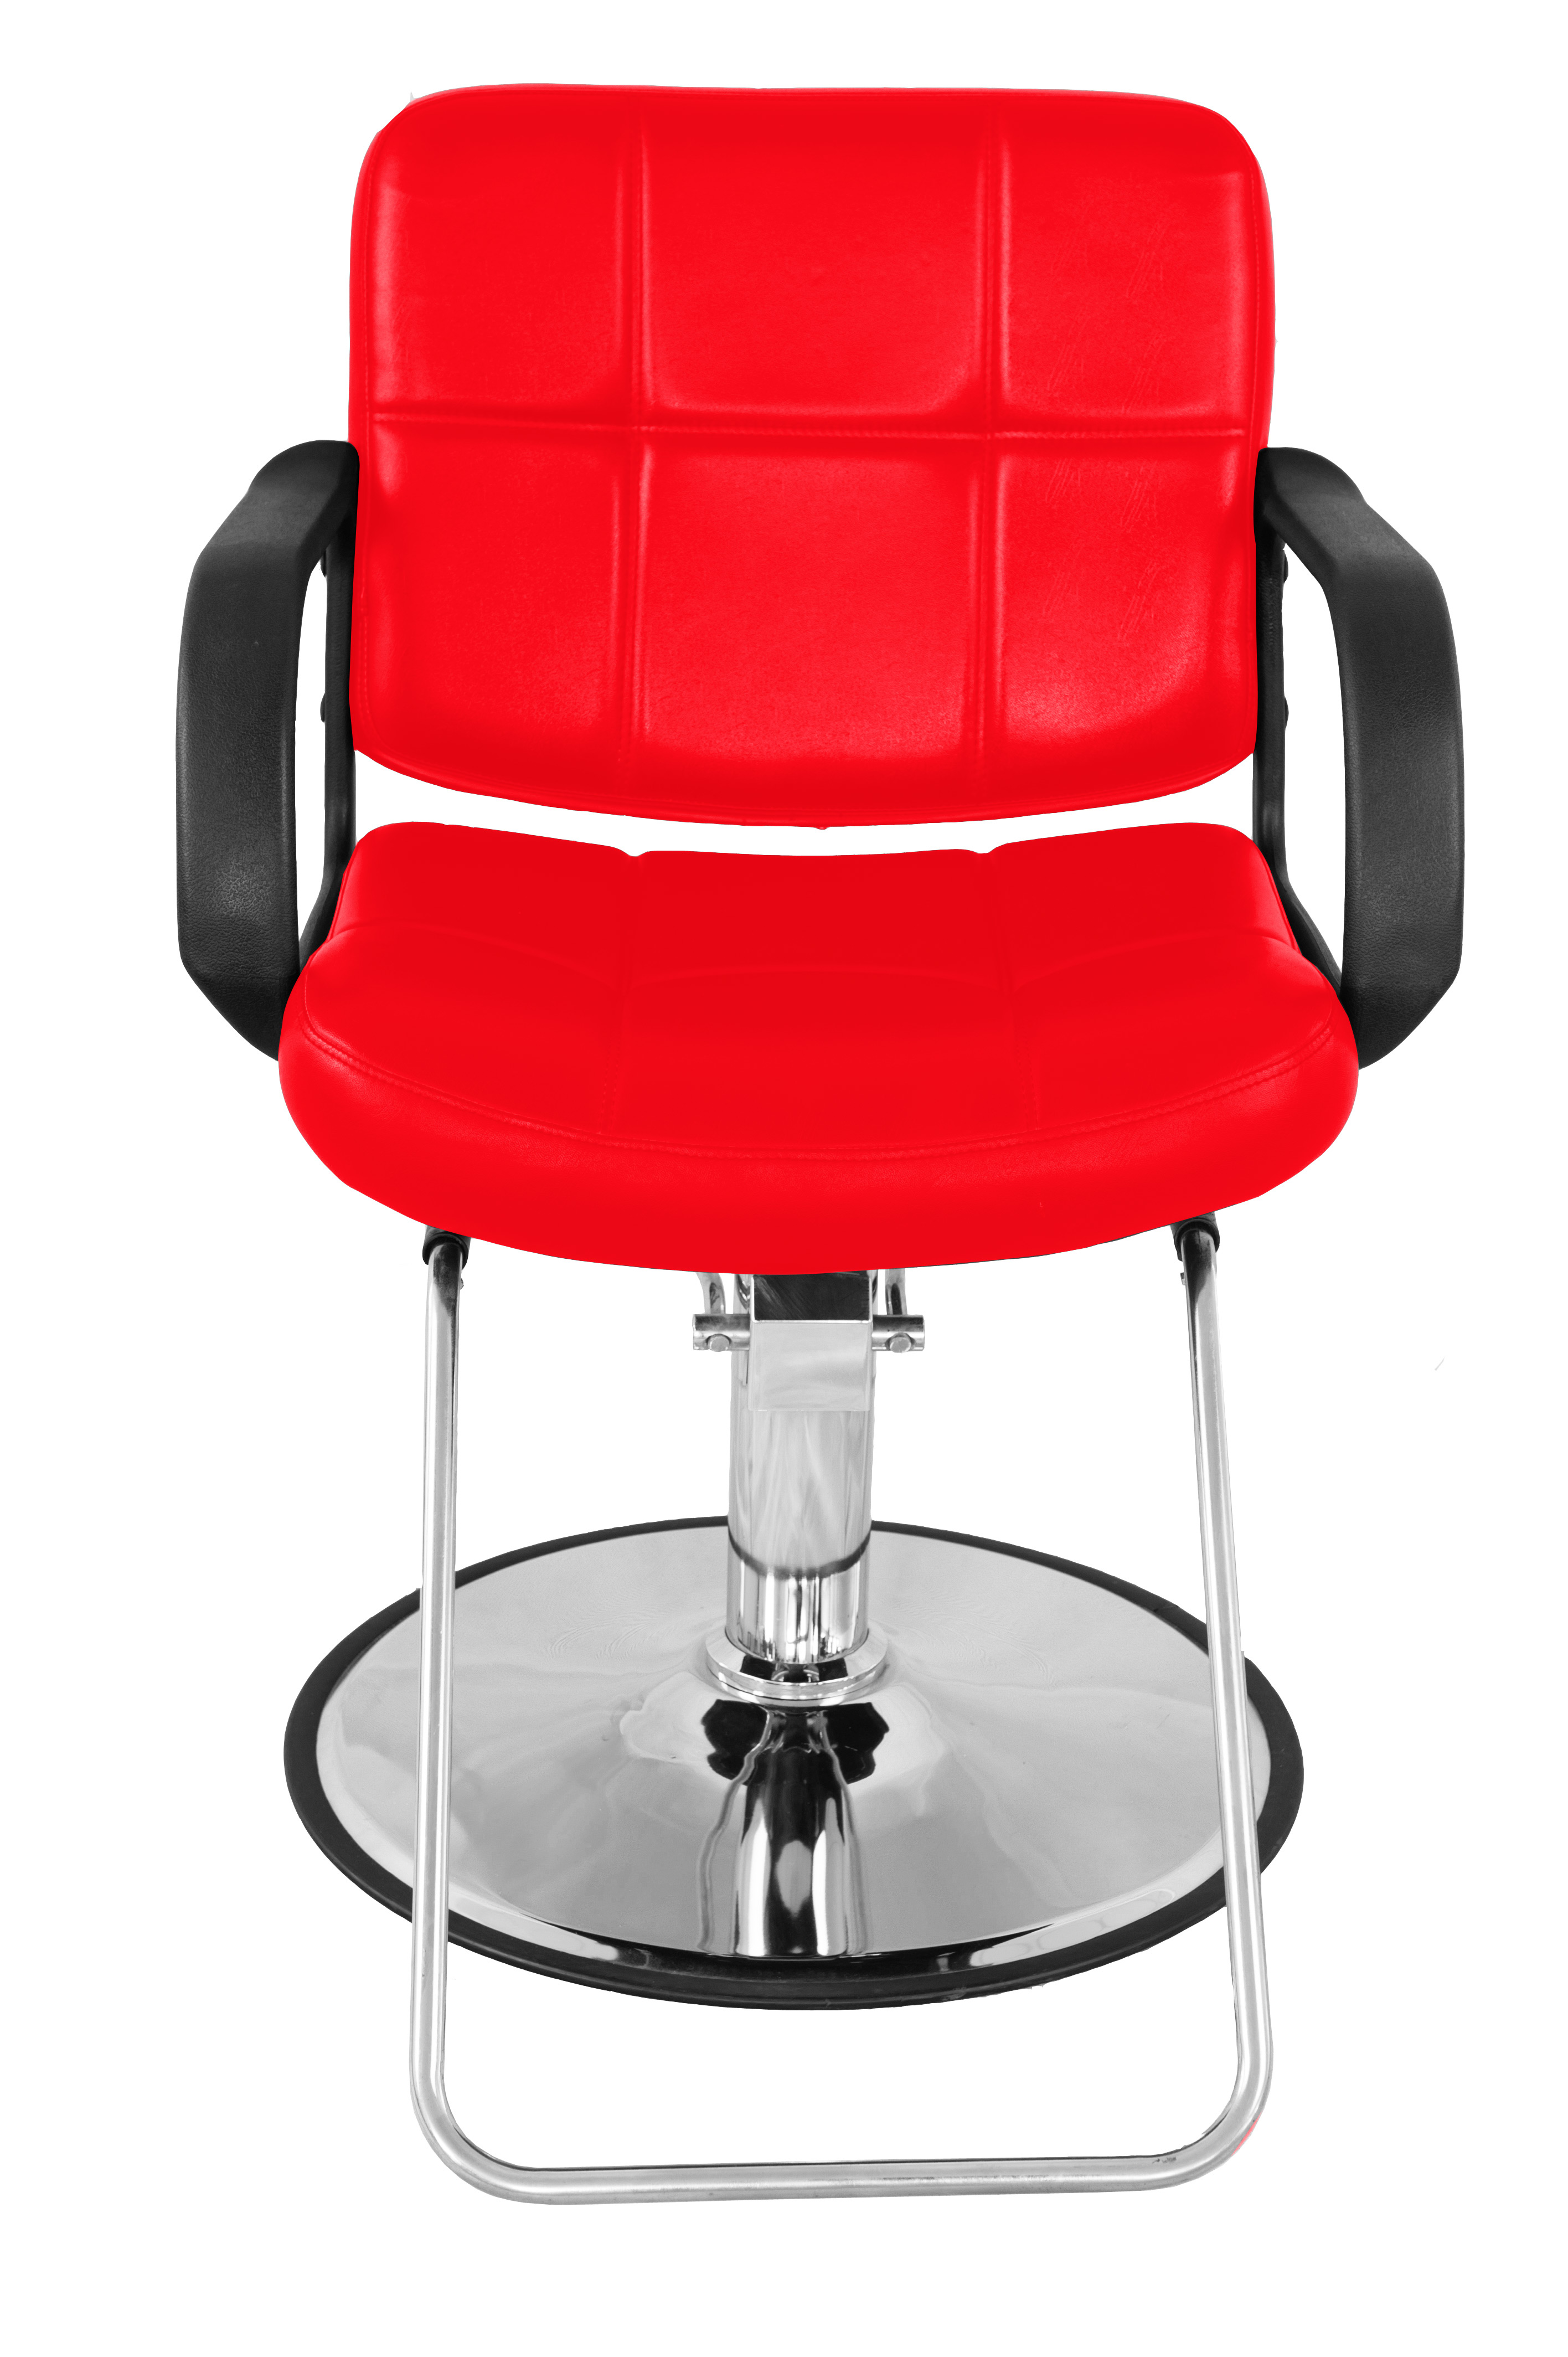 hydraulic hair styling chairs leather dining chair barberpub classic barber salon beauty spa